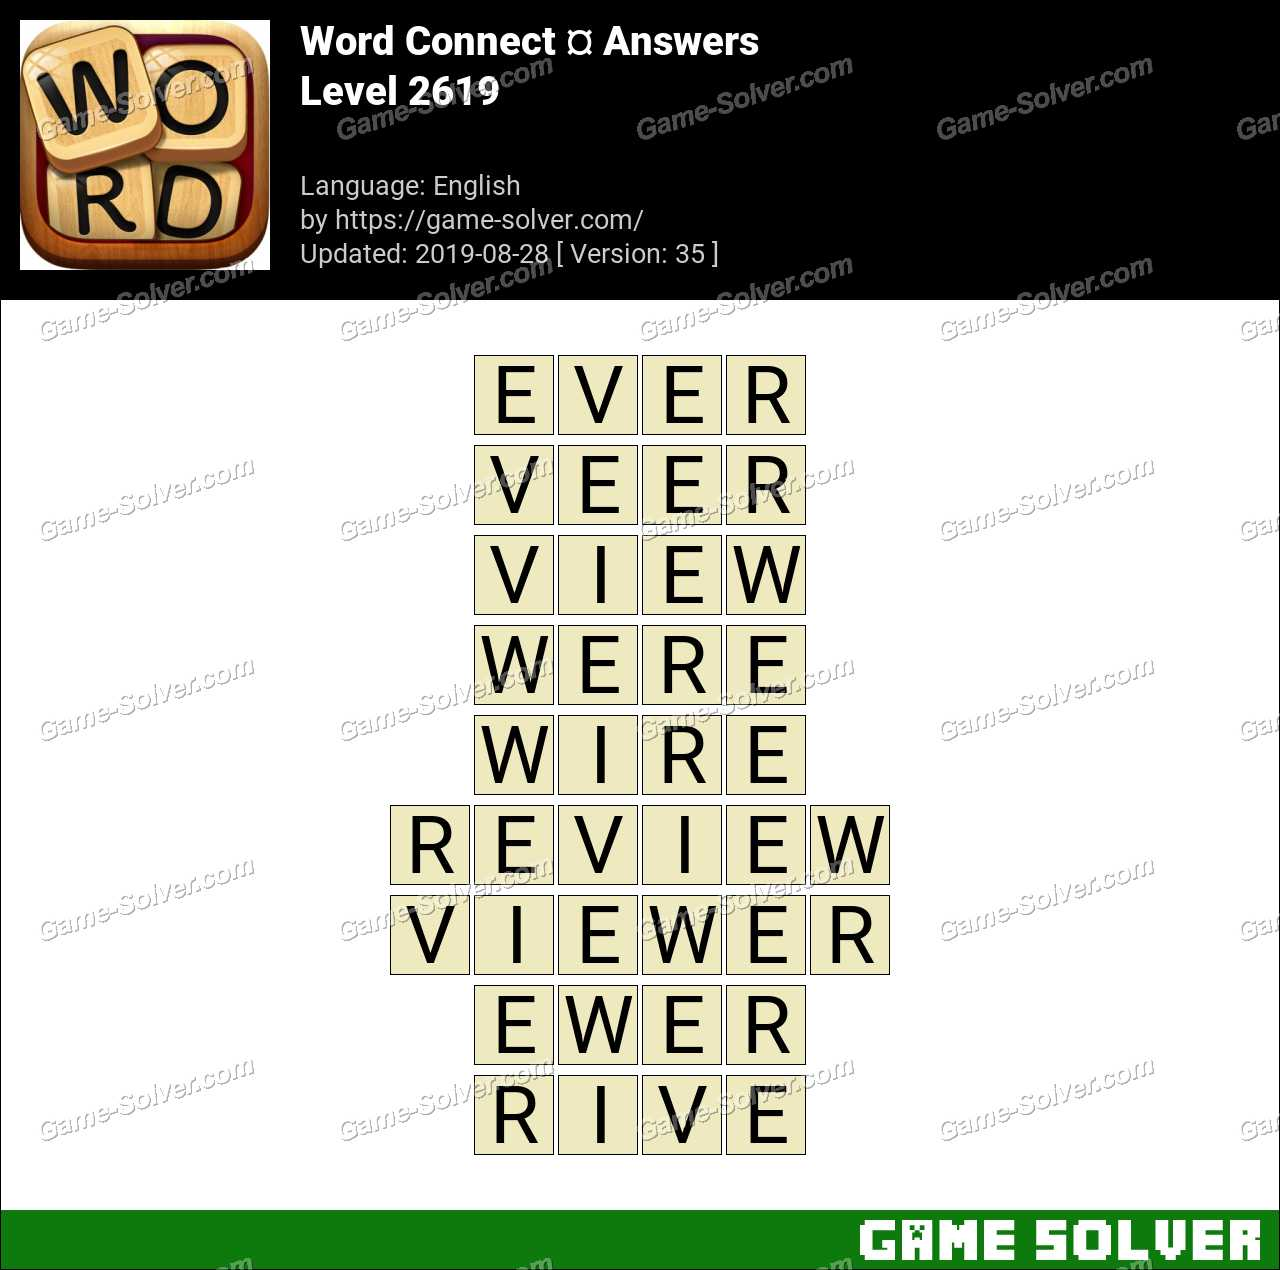 Word Connect Level 2619 Answers